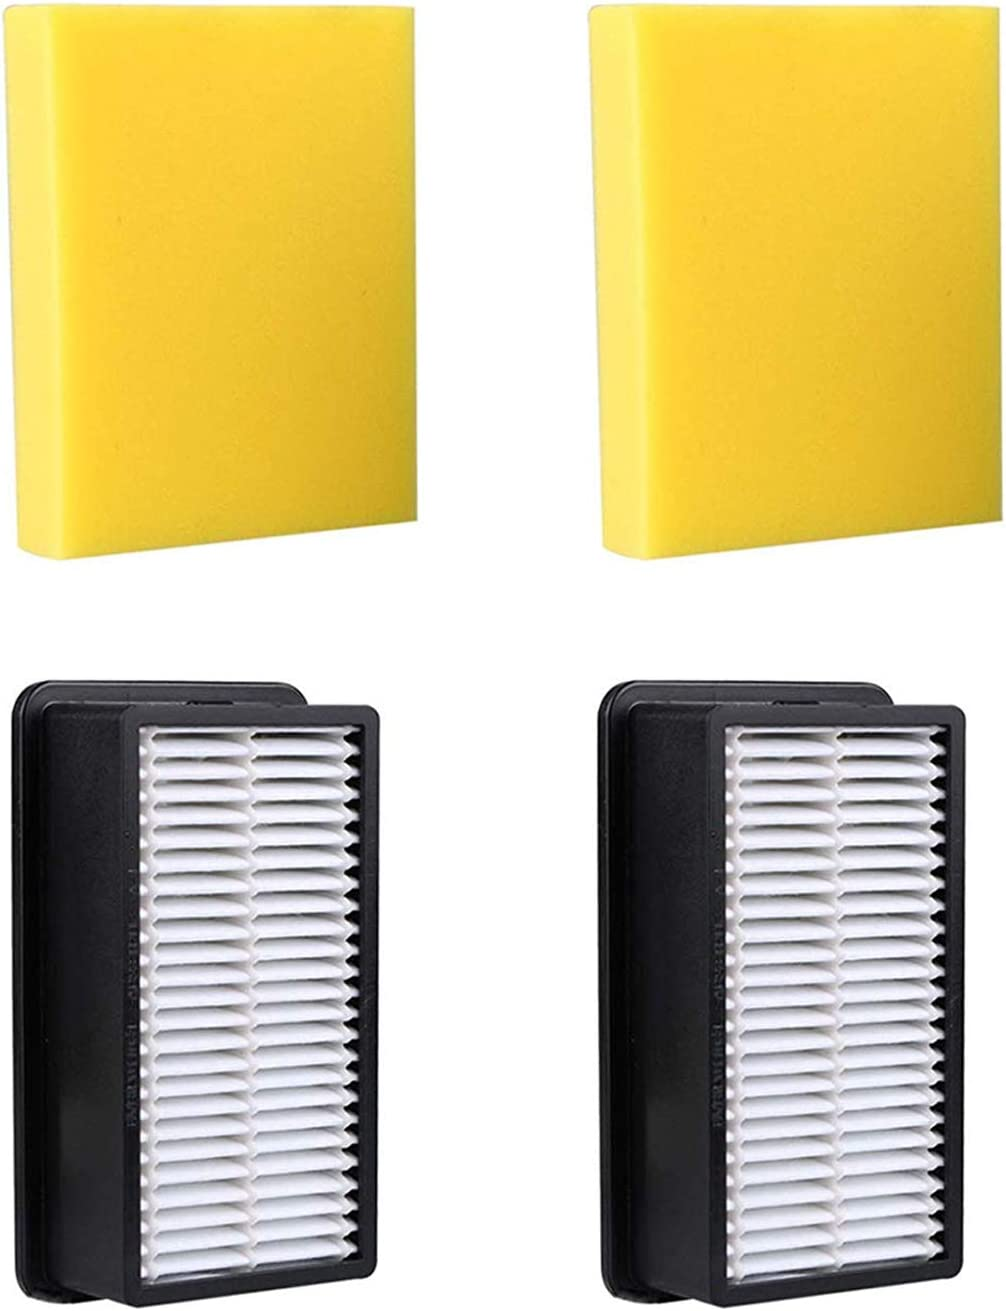 LGLR 2 Pack Pre & Post Motor Replacement Filter Kit for Bissell 1008, 9595A, 1330, 1328 CleanView, Compare to Part # 2032663 & 1601502, 2 Pre-Motor Foam Filter and 2 Post-Motor Filter